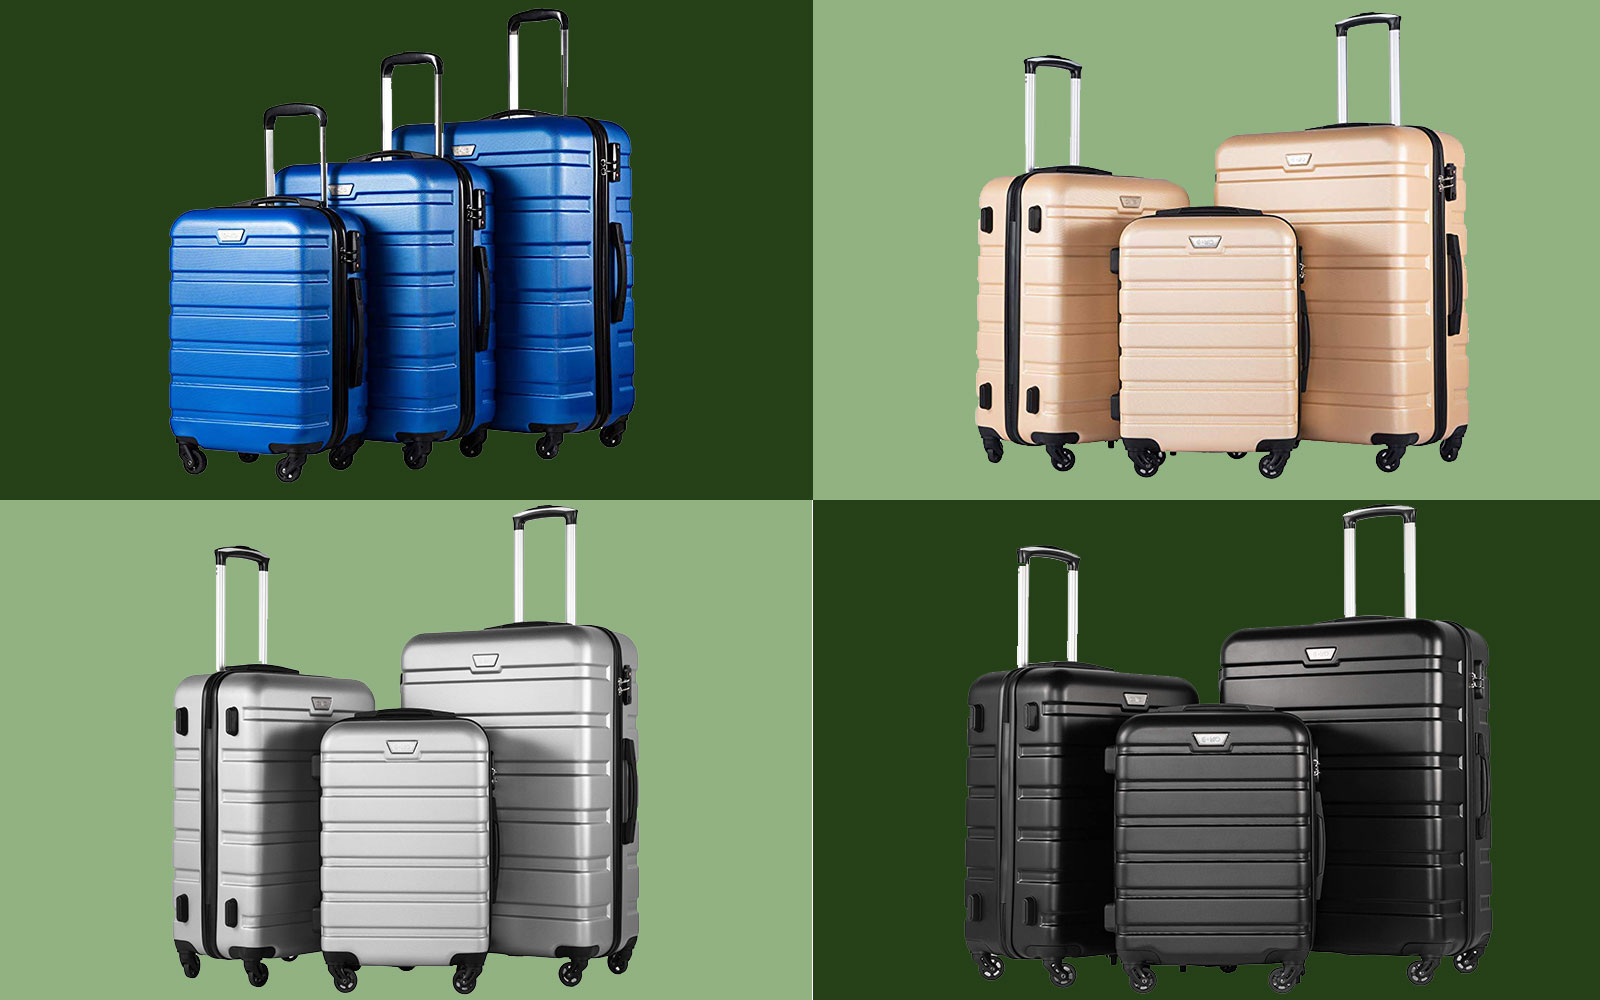 Amazon's Best-selling Luggage Set Includes Three Suitcases for Under $140